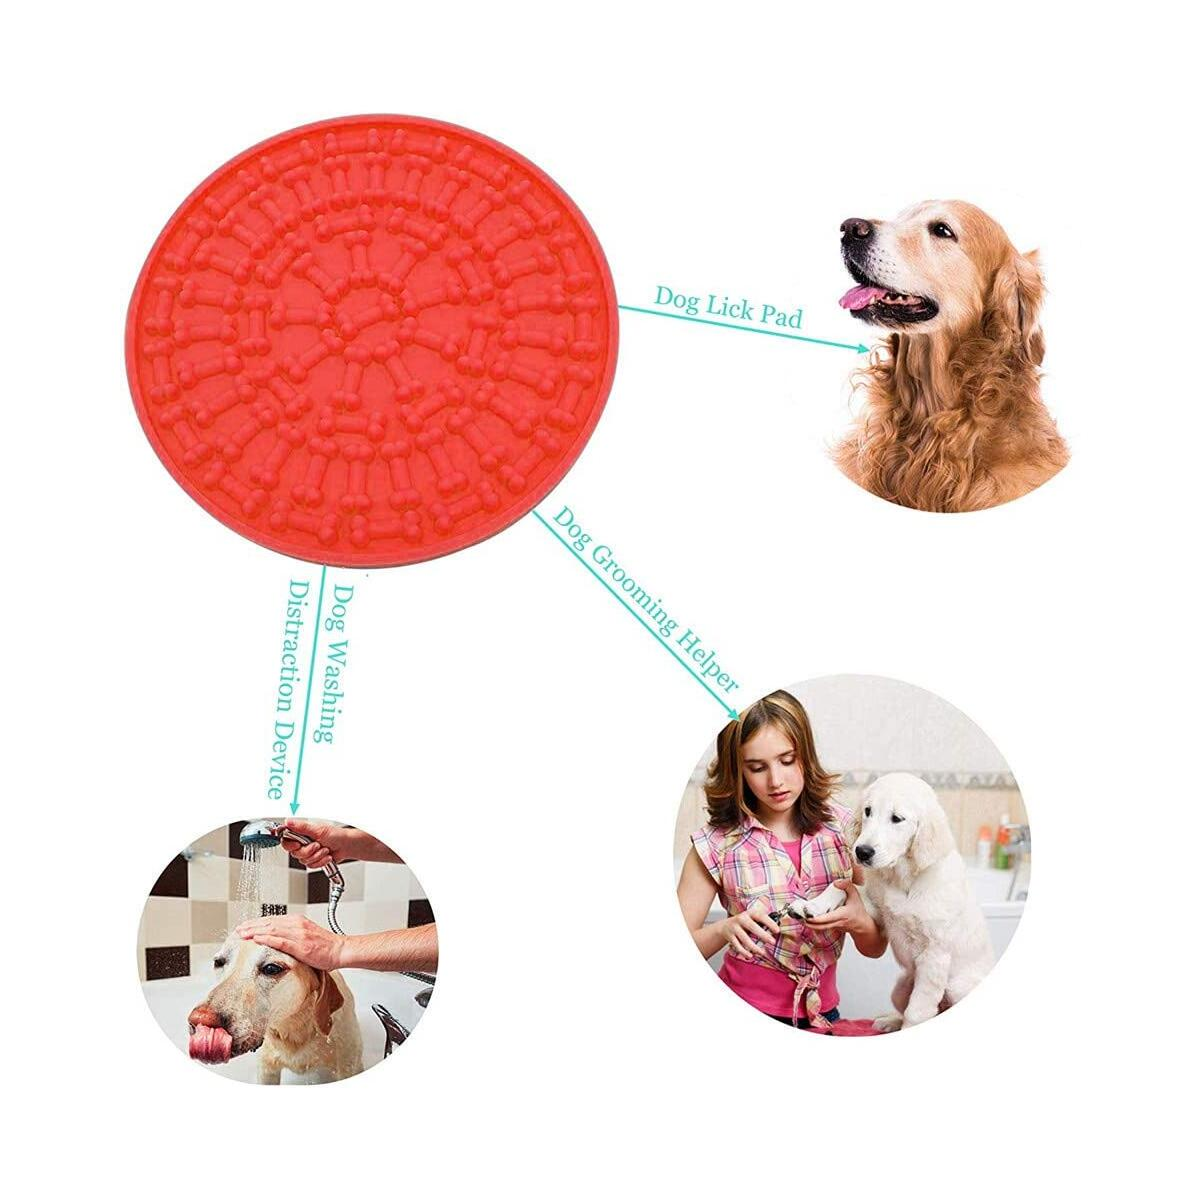 EMPOROI Pet Slow Food Mat Dog Bath Peanut Butter Licking Pad with Food Grade Silicone Dog Lick Mat